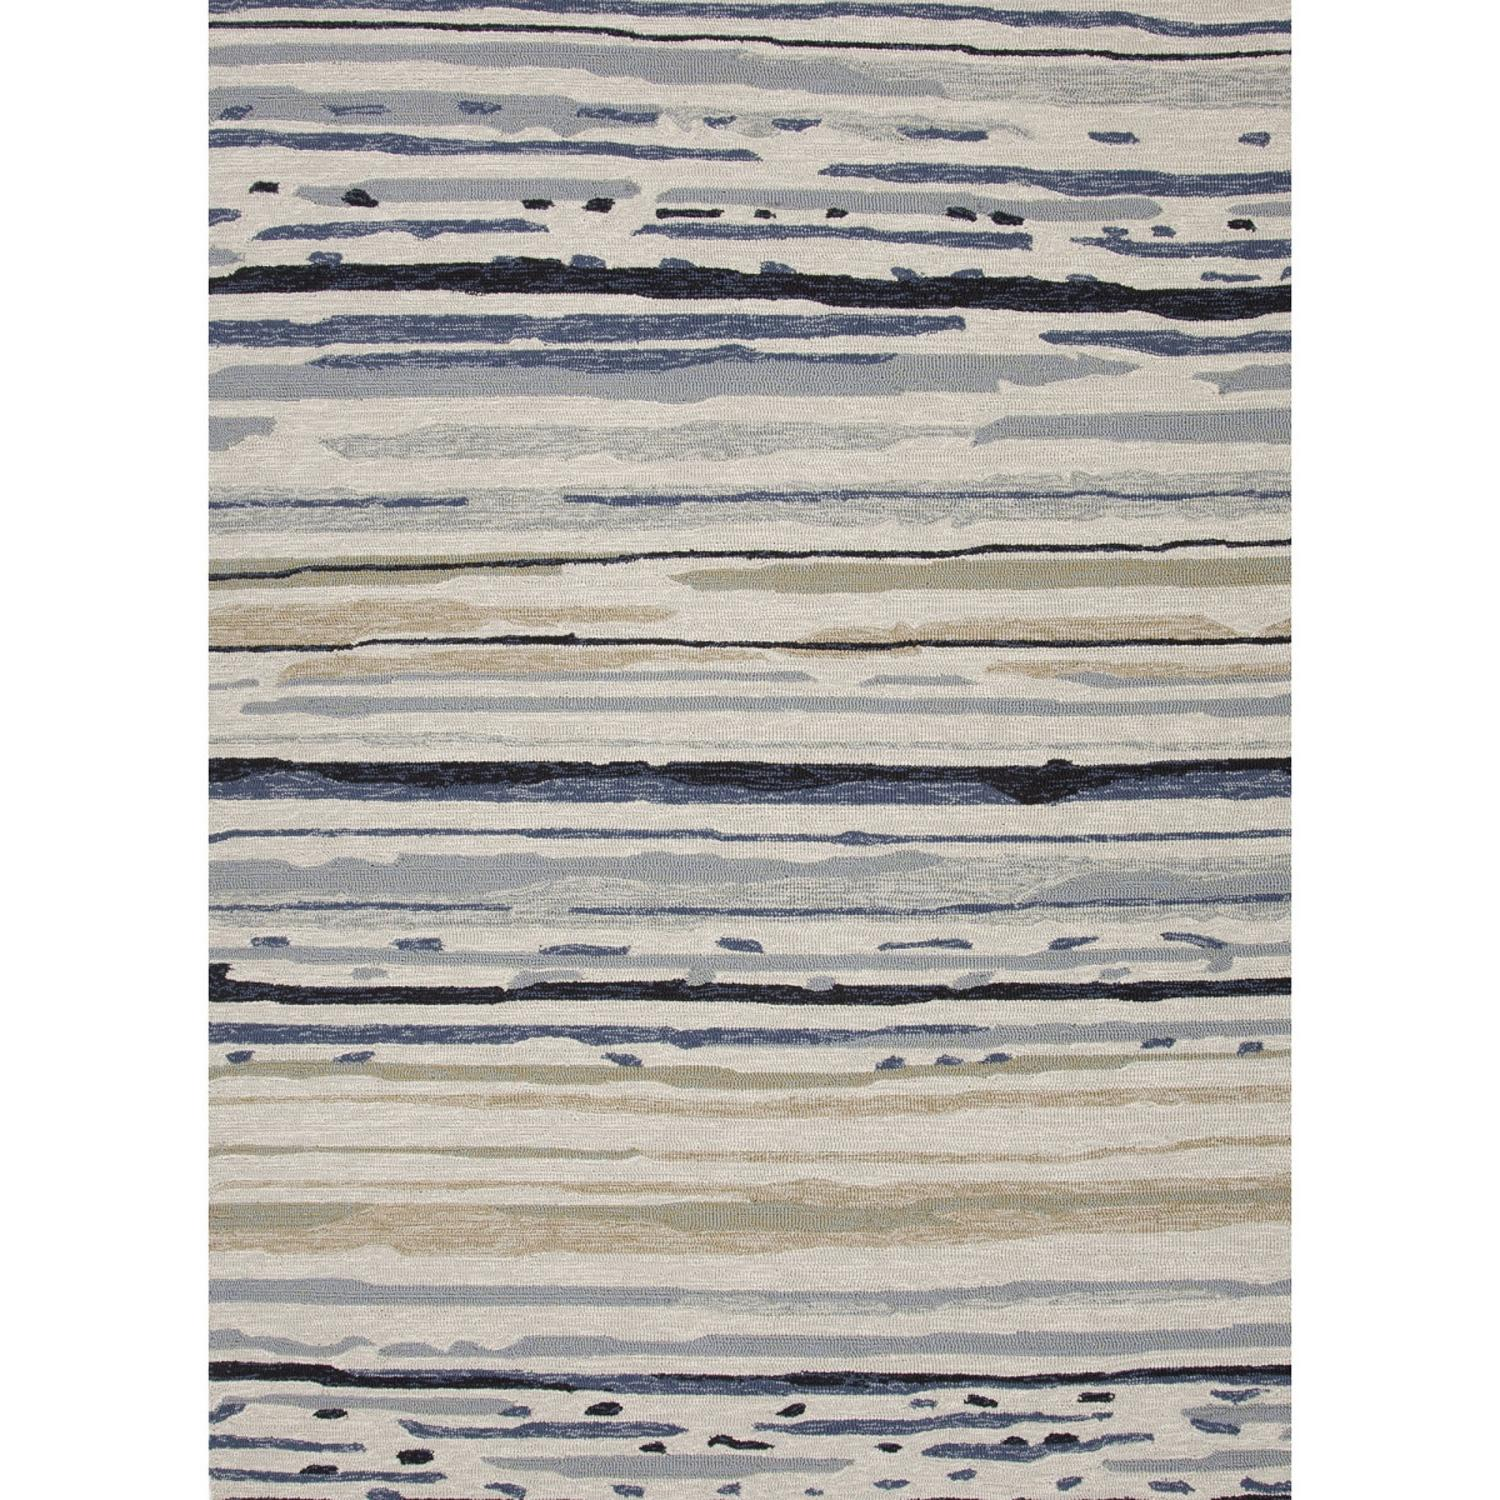 2' x 3' Blue and Ivory Sketchy Lines Outdoor Area Throw Rug